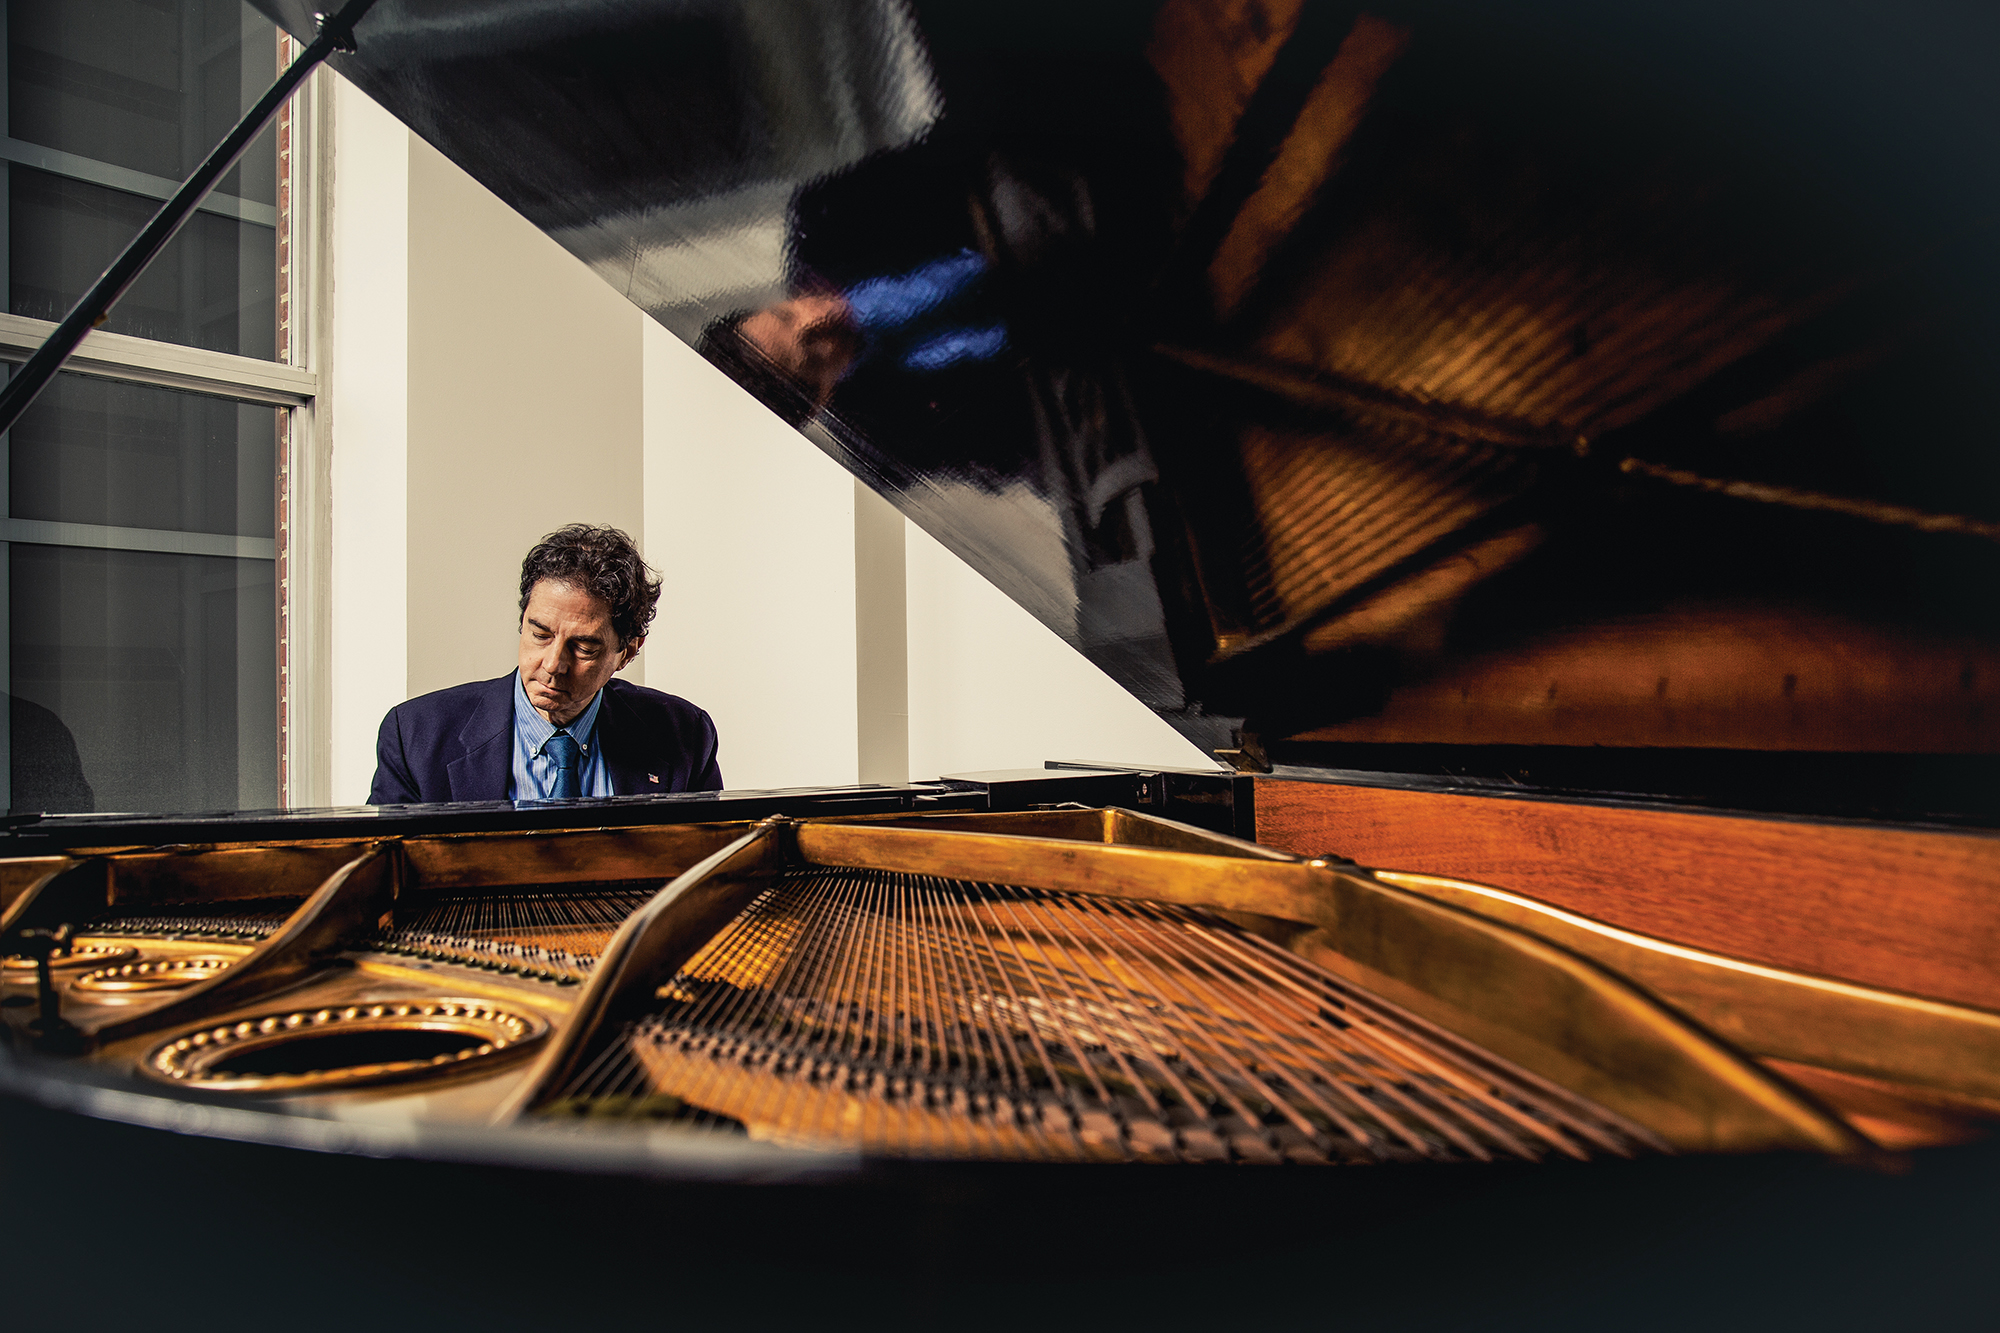 A man plays the piano wearing a suit.